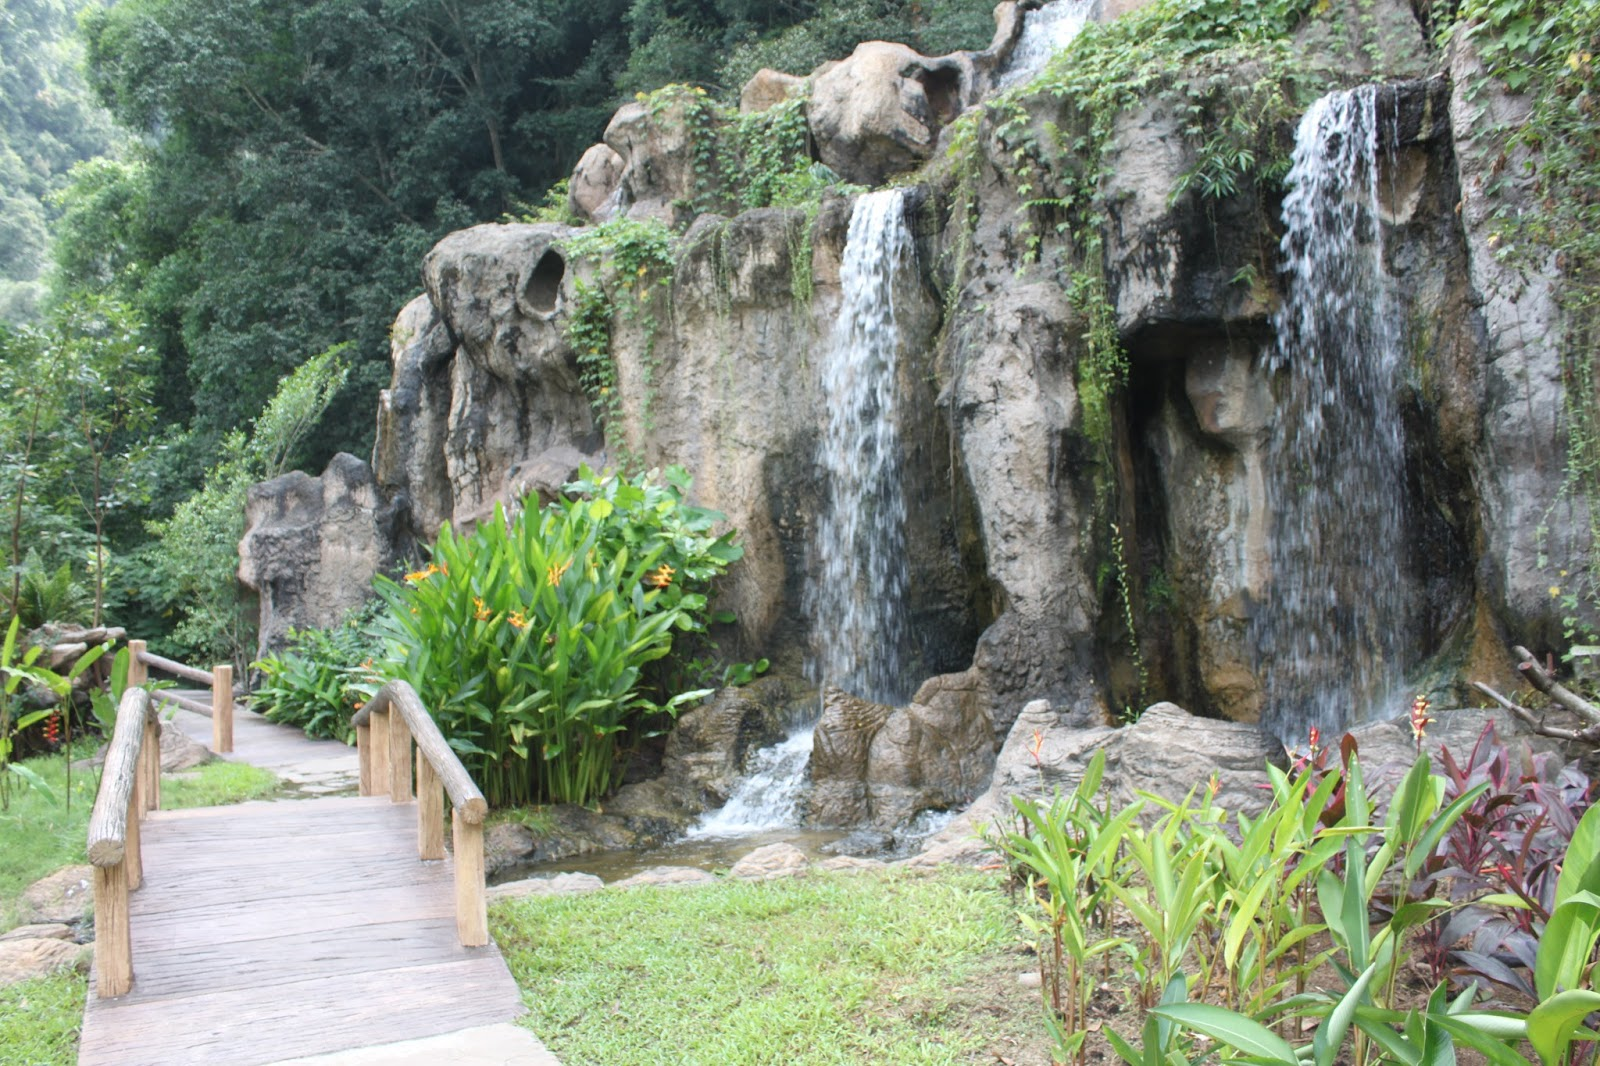 Kee Hua Chee Live Banjaran Hotsprings Retreat In Perak Is Malaysia 39 S Most Exclusive Exotic